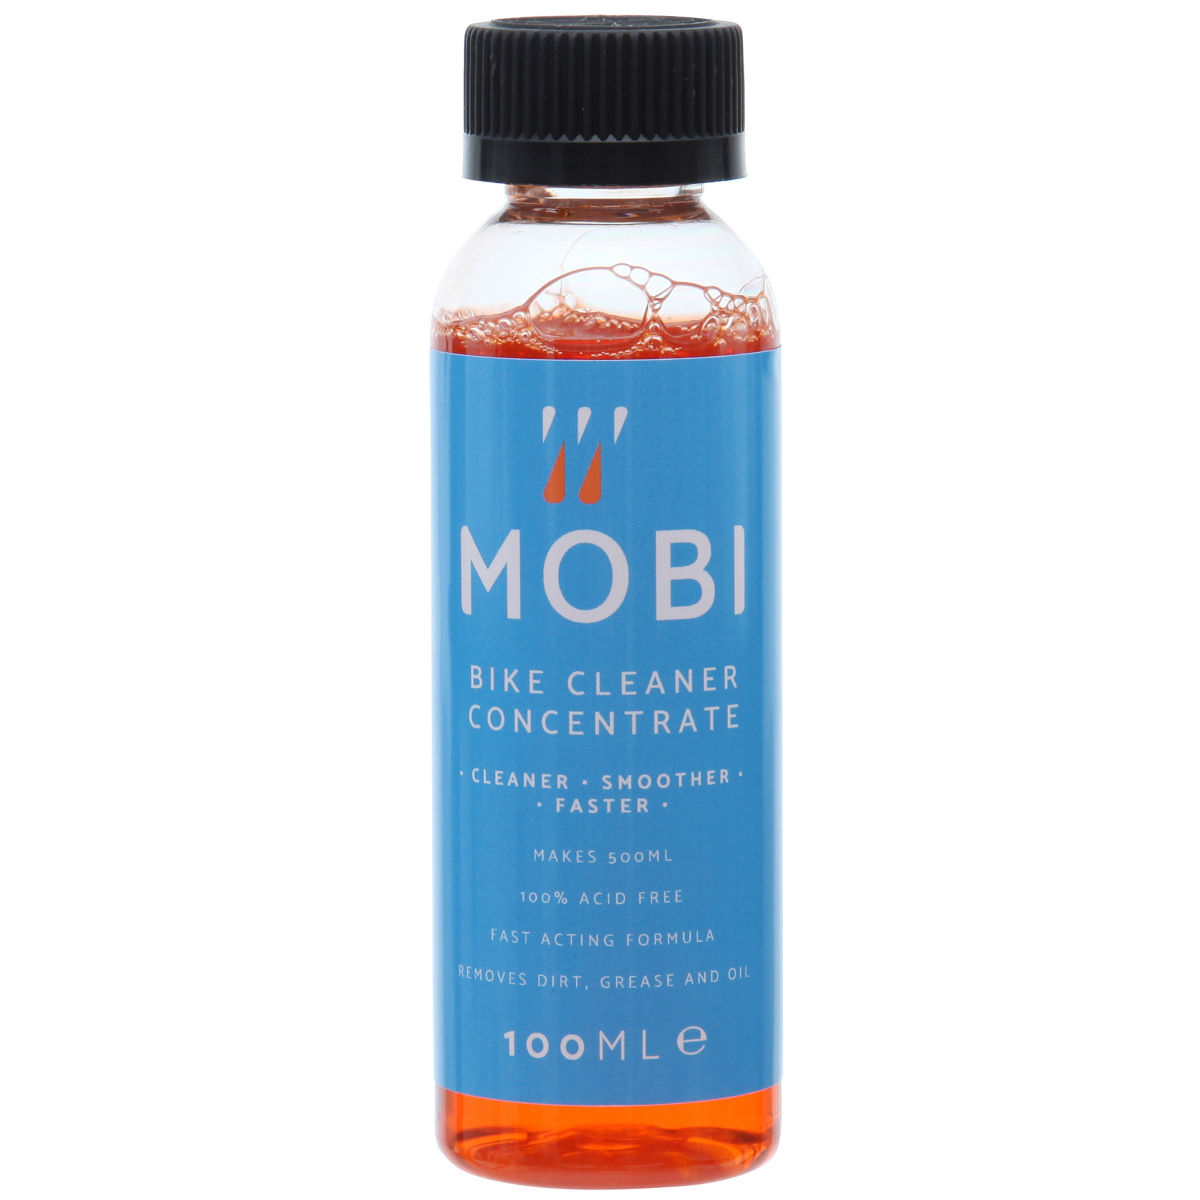 Mobi Bike Cleaner Concentrate 100ml - Productos de limpieza